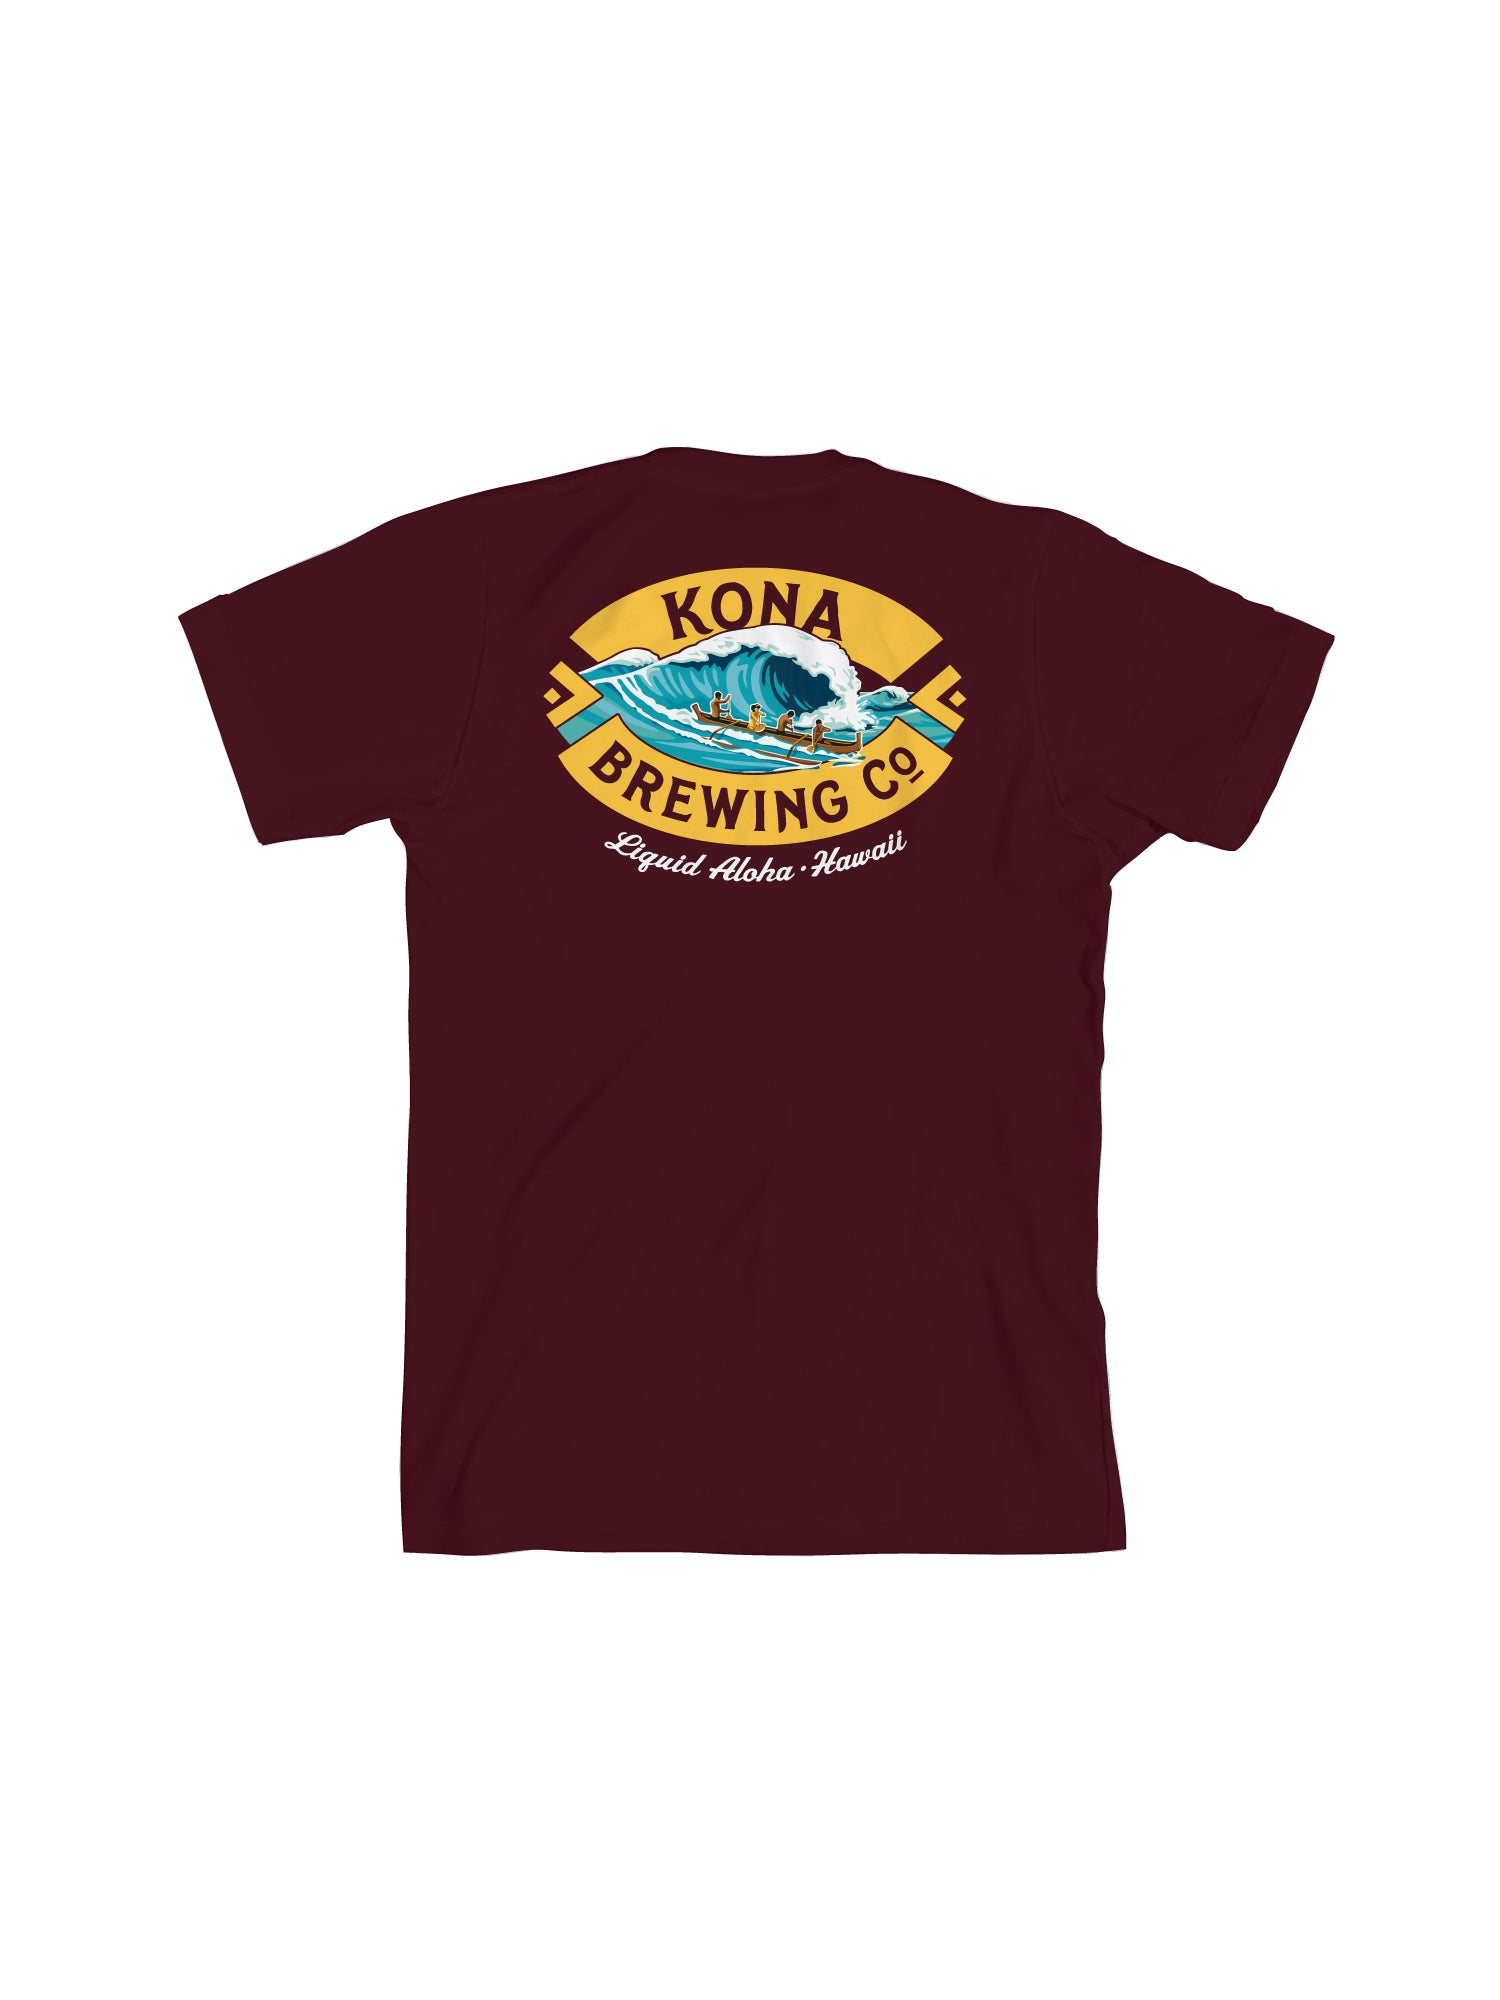 KONA BIG WAVE MEN TEE- MAROON - Anderson Bros Design and Supply